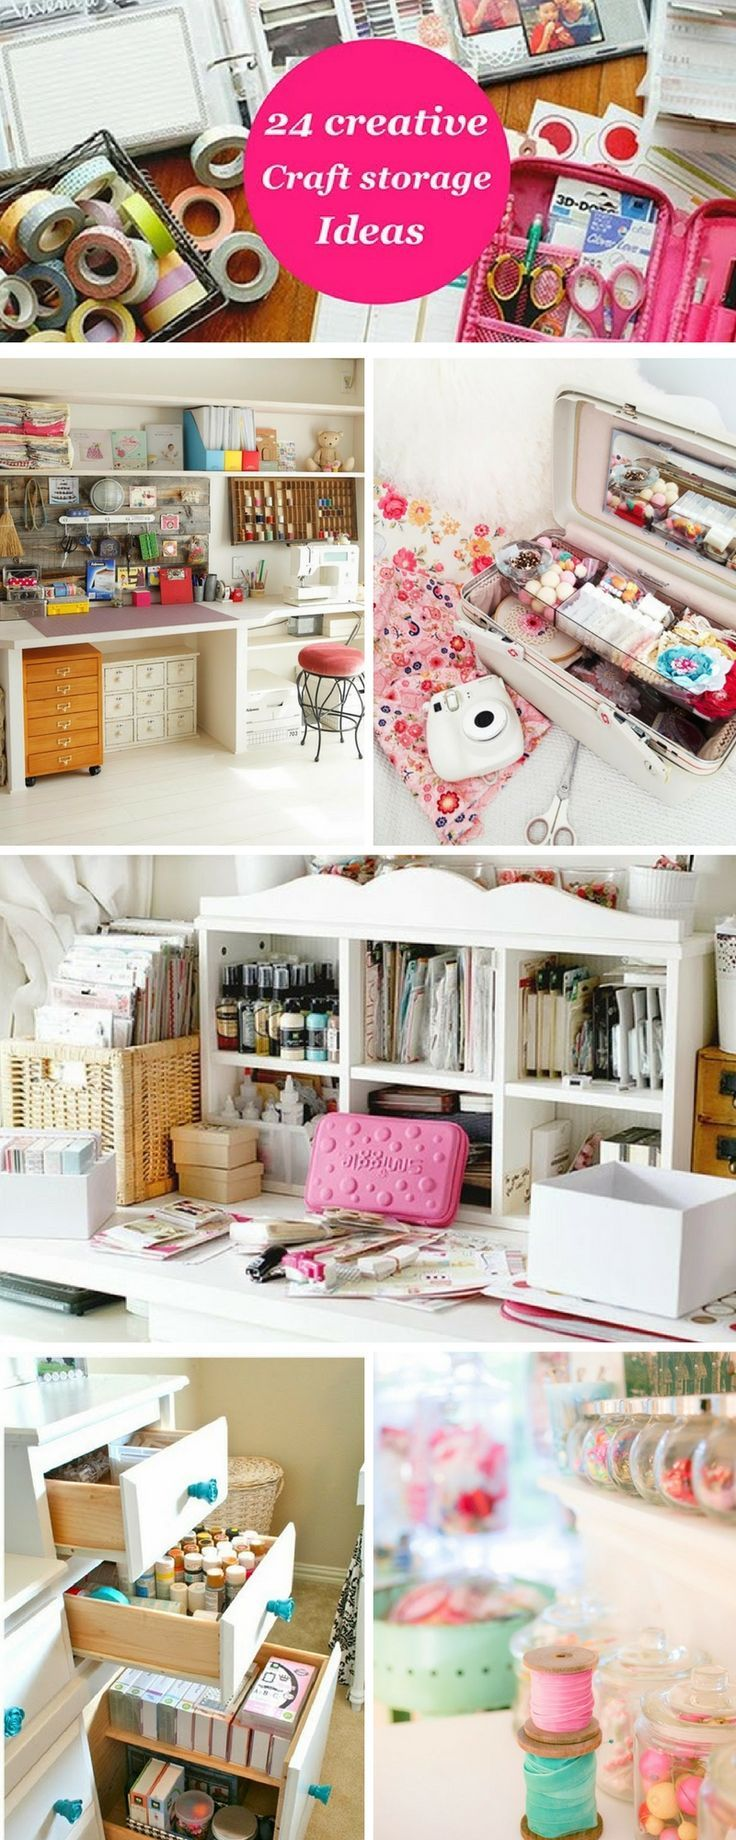 In need of some craft storage ideas for your home office? Whether you are using floral tupperware, childrens wall shelves, bathroom organizers or desktop drawers, there are loads of crafty ideas that can help you repurpose something and use it as effective craft storage.